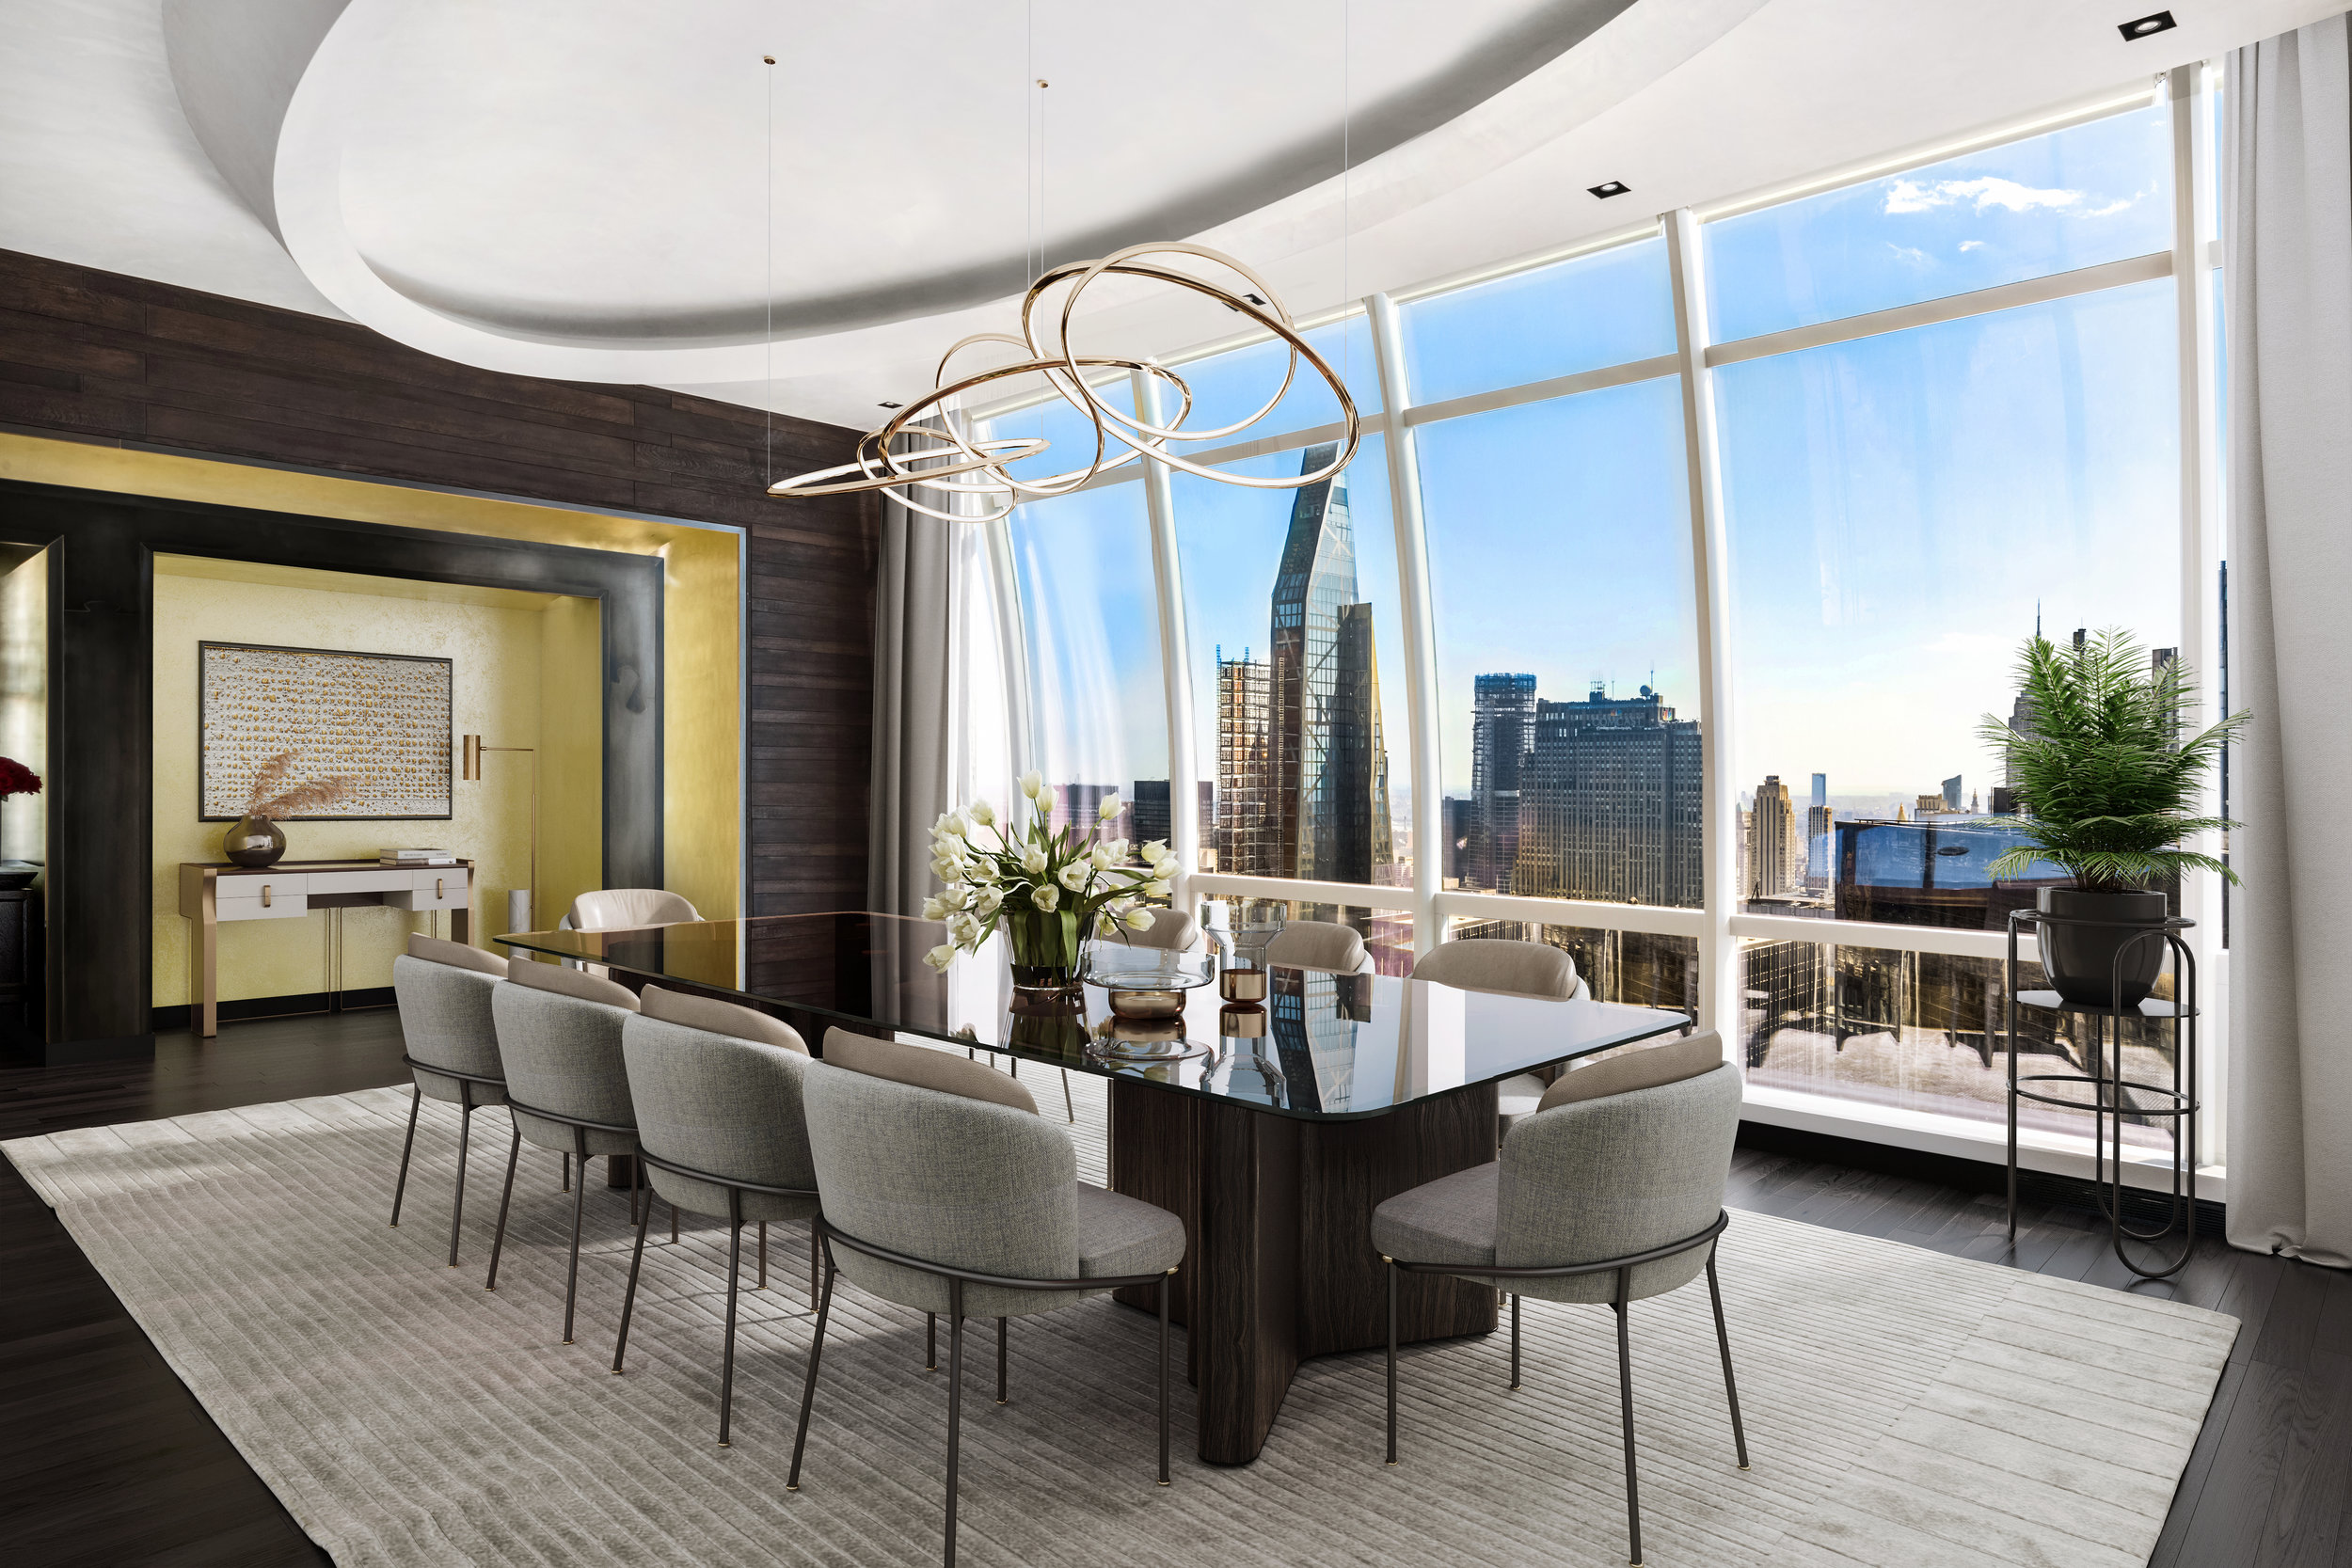 One57157West57thSt67B-CentralParkSouthNewYork_Anthony_Barillo_DouglasElliman_Photography_76925078_high_res.jpg